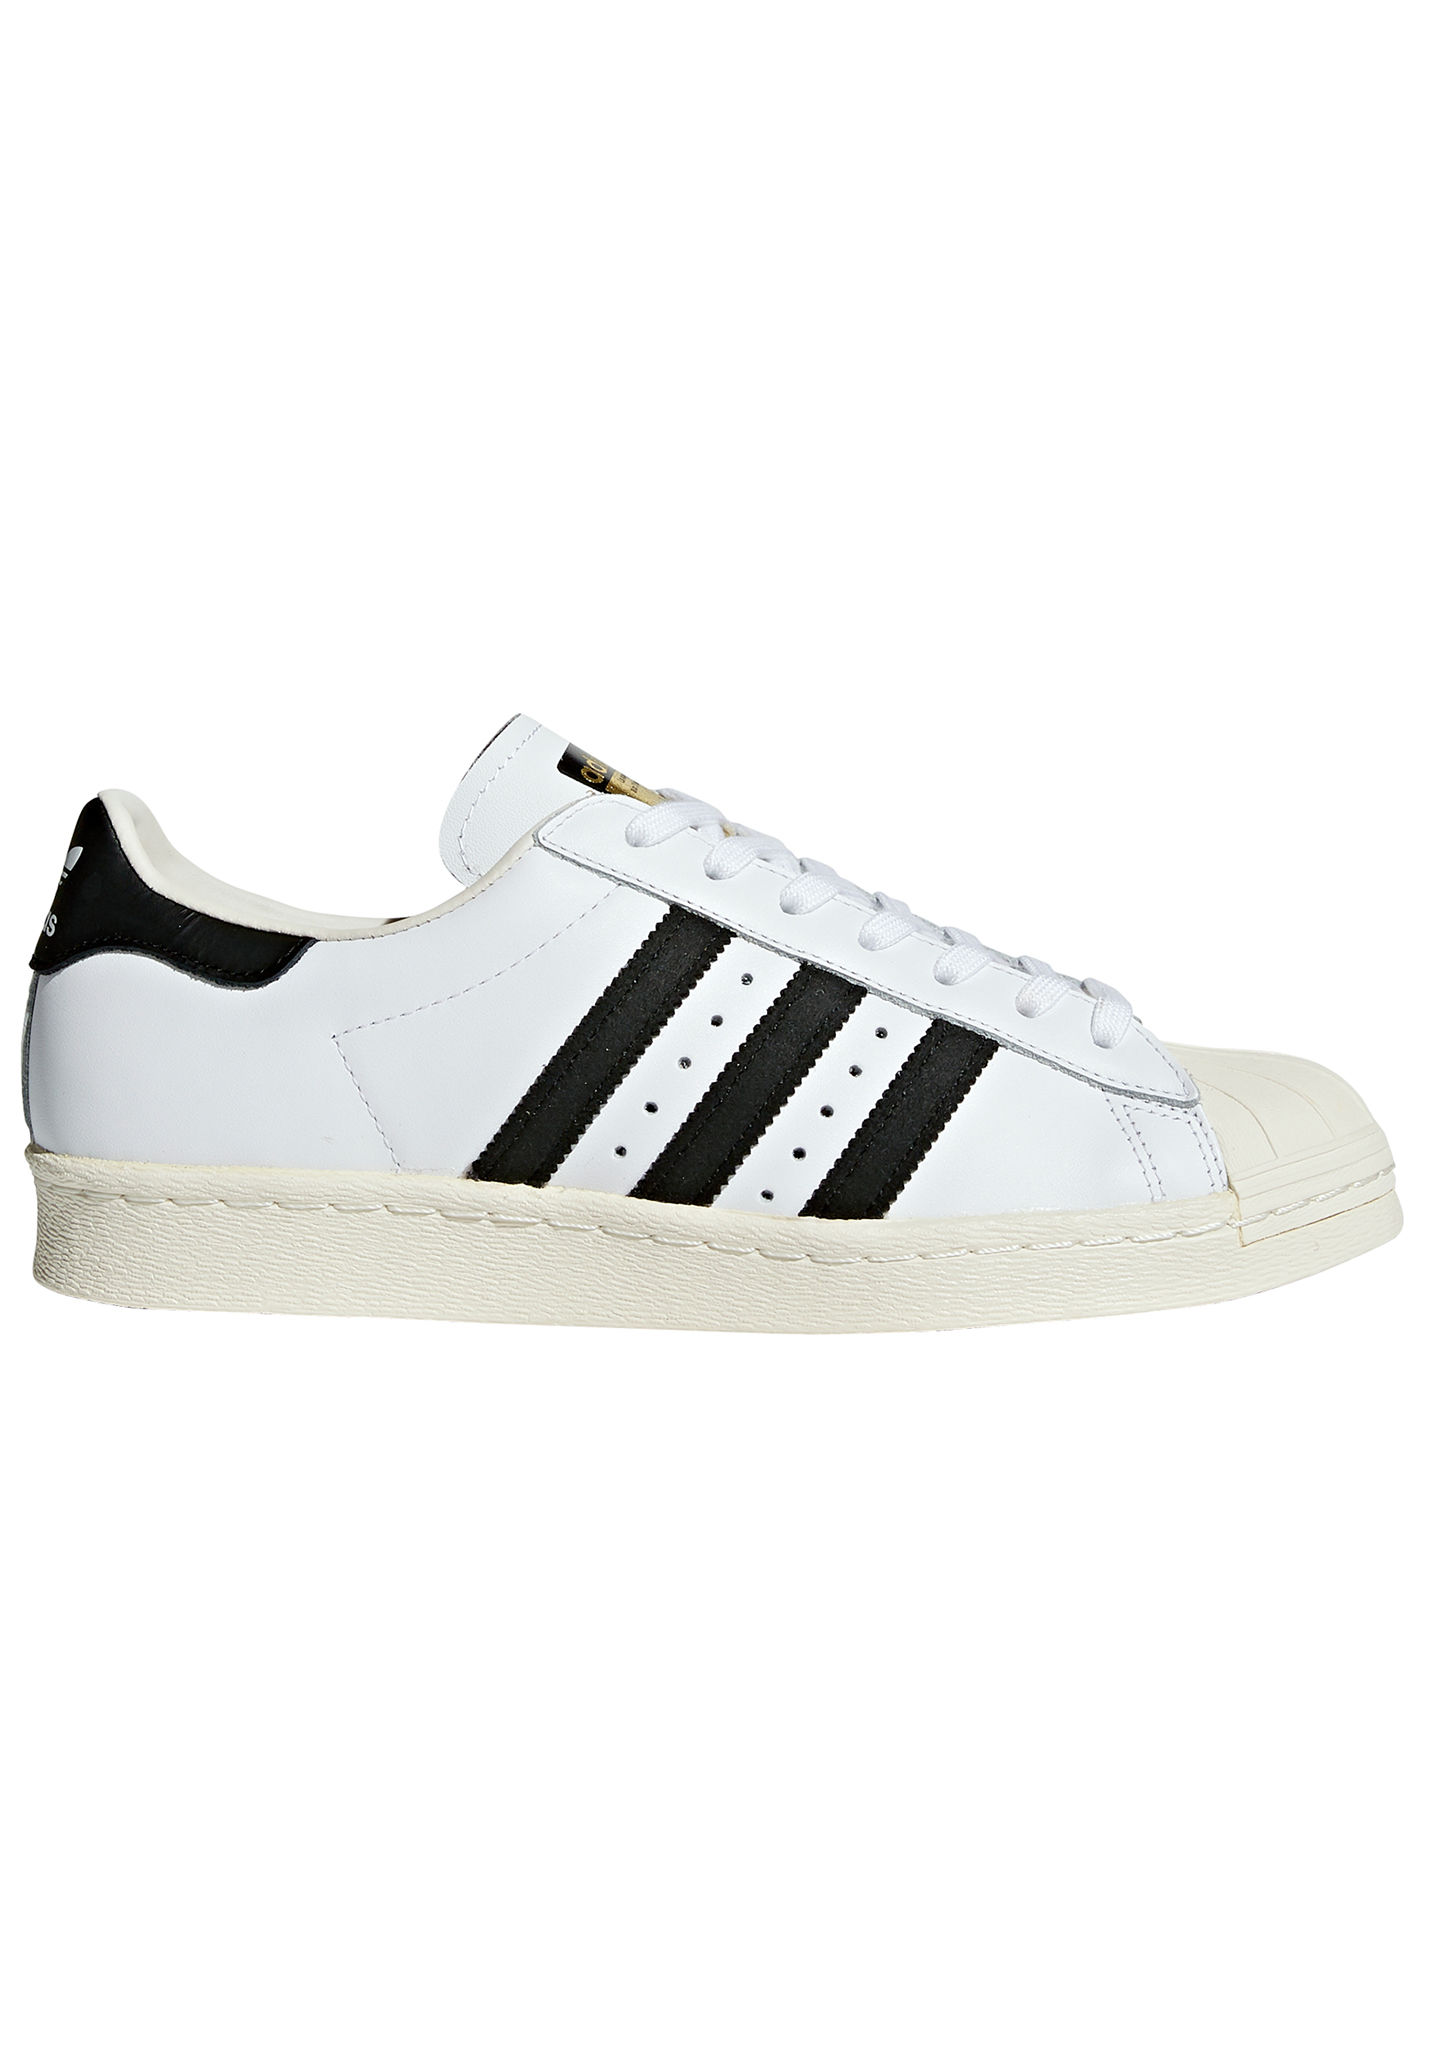 ADIDAS ORIGINALS Superstar 80S Baskets pour Homme Blanc